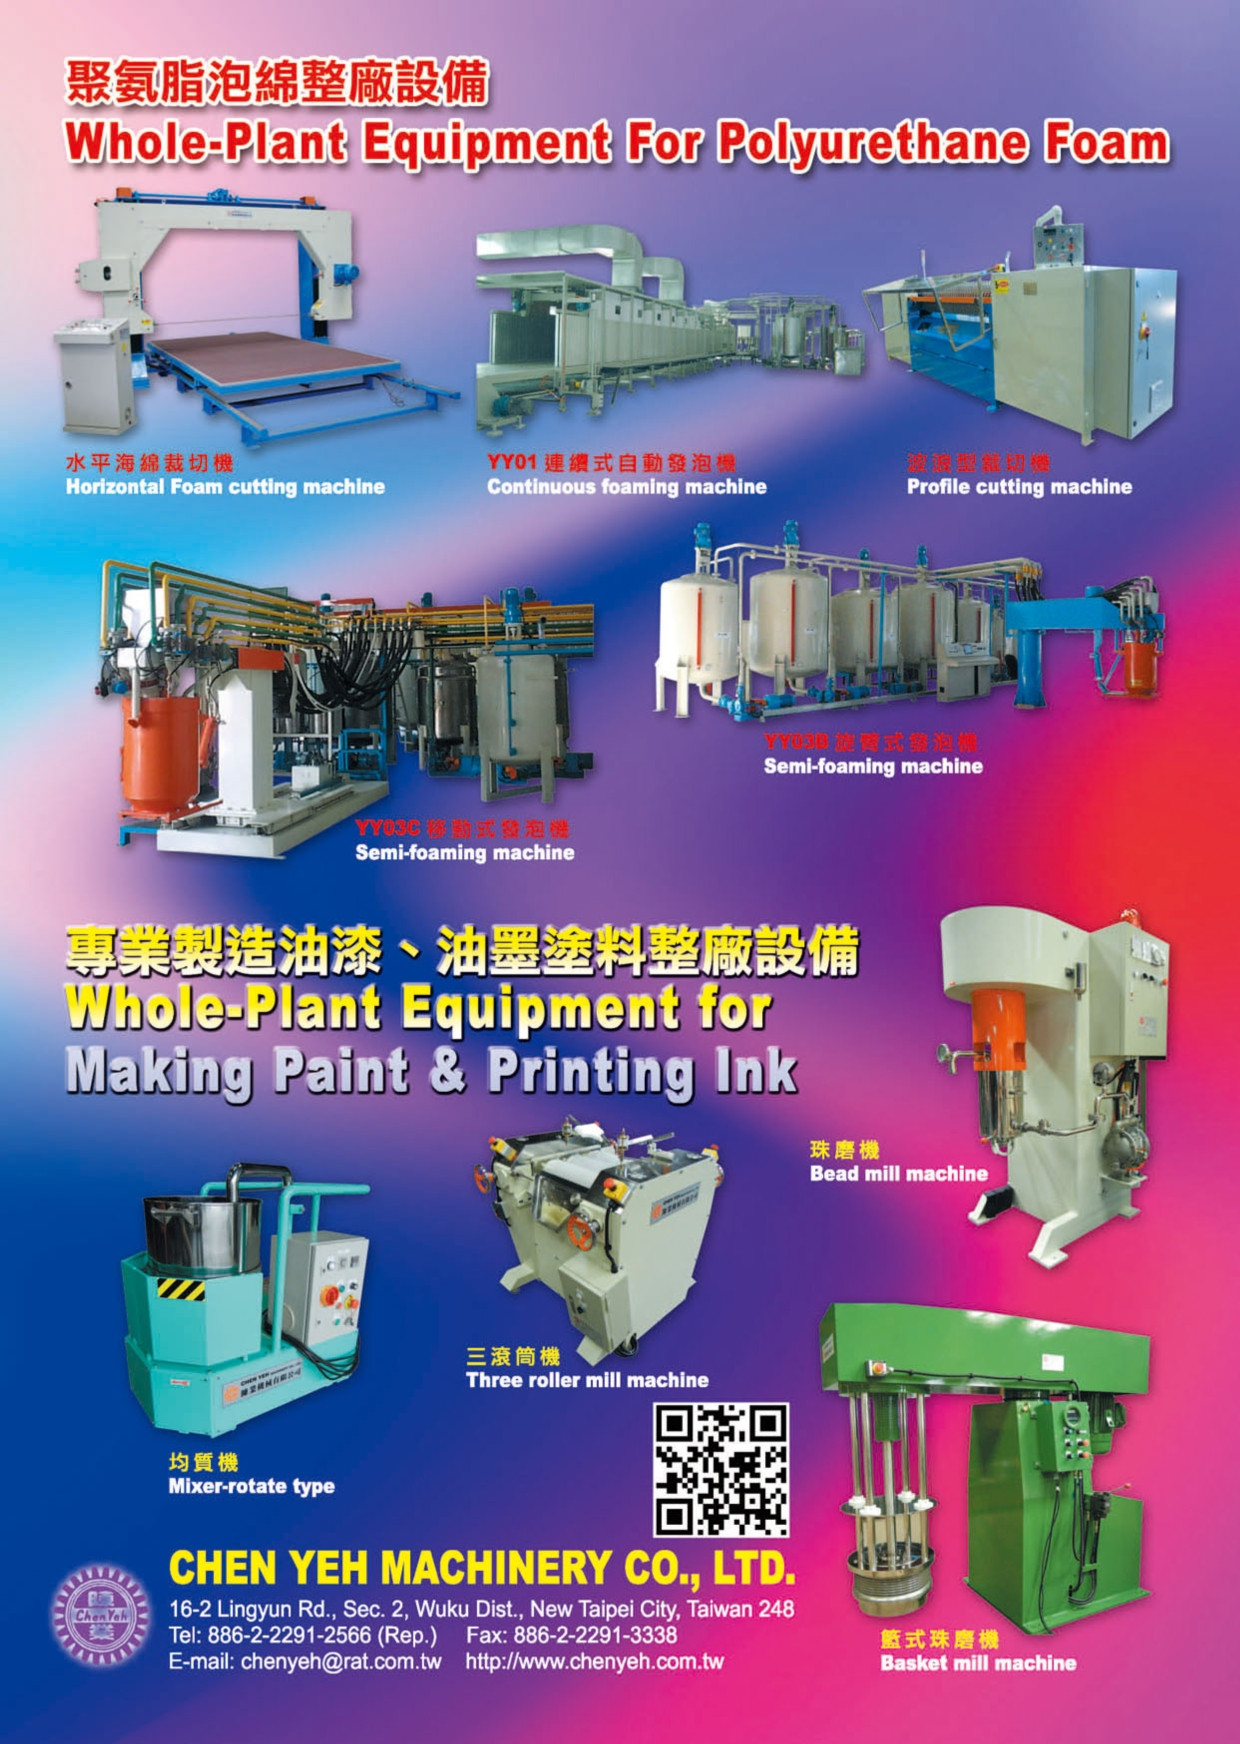 Who Makes Machinery in Taiwan (Chinese) CHEN YEH MACHINERY CO., LTD.